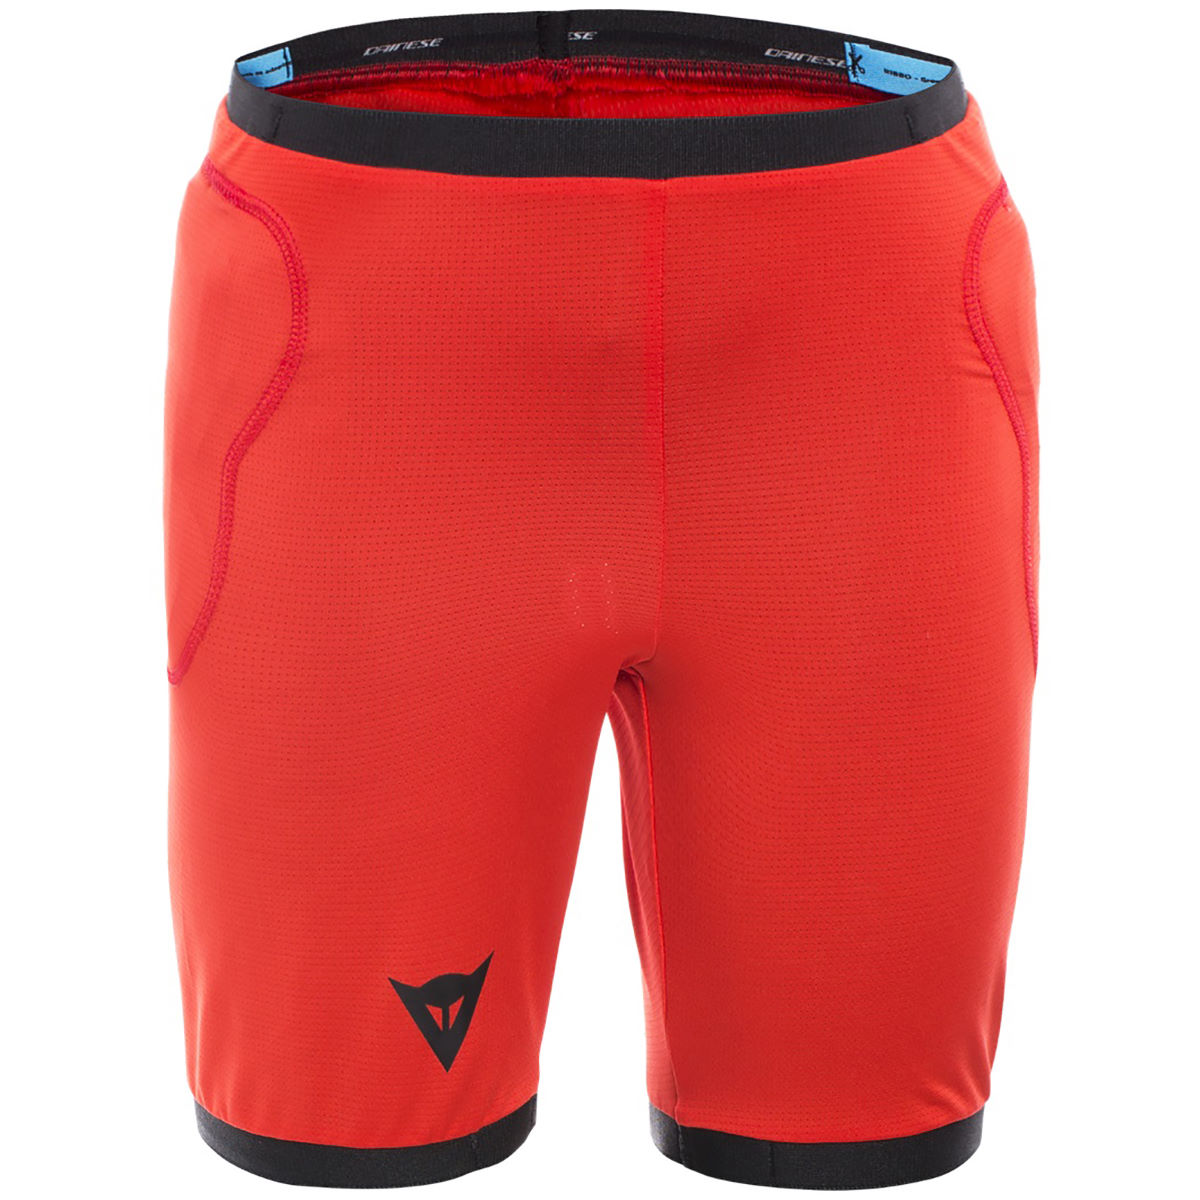 Dainese Dainese Junior Scarabeo Safety Shorts   Protective Shorts